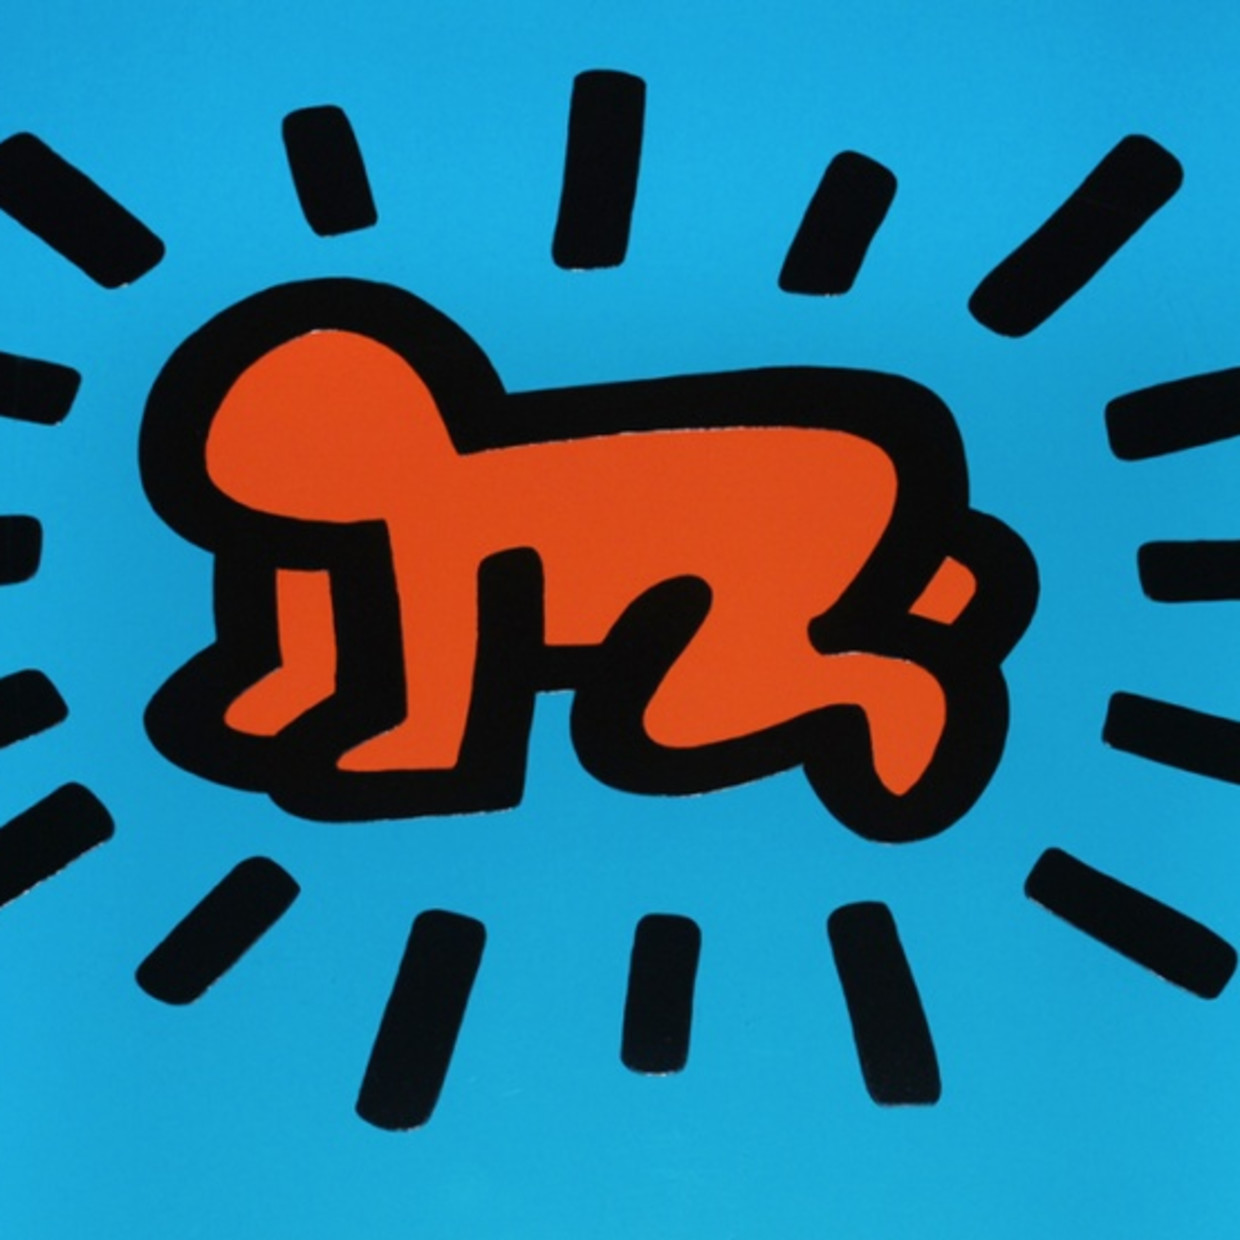 Current Exhibition: ICON Keith Haring